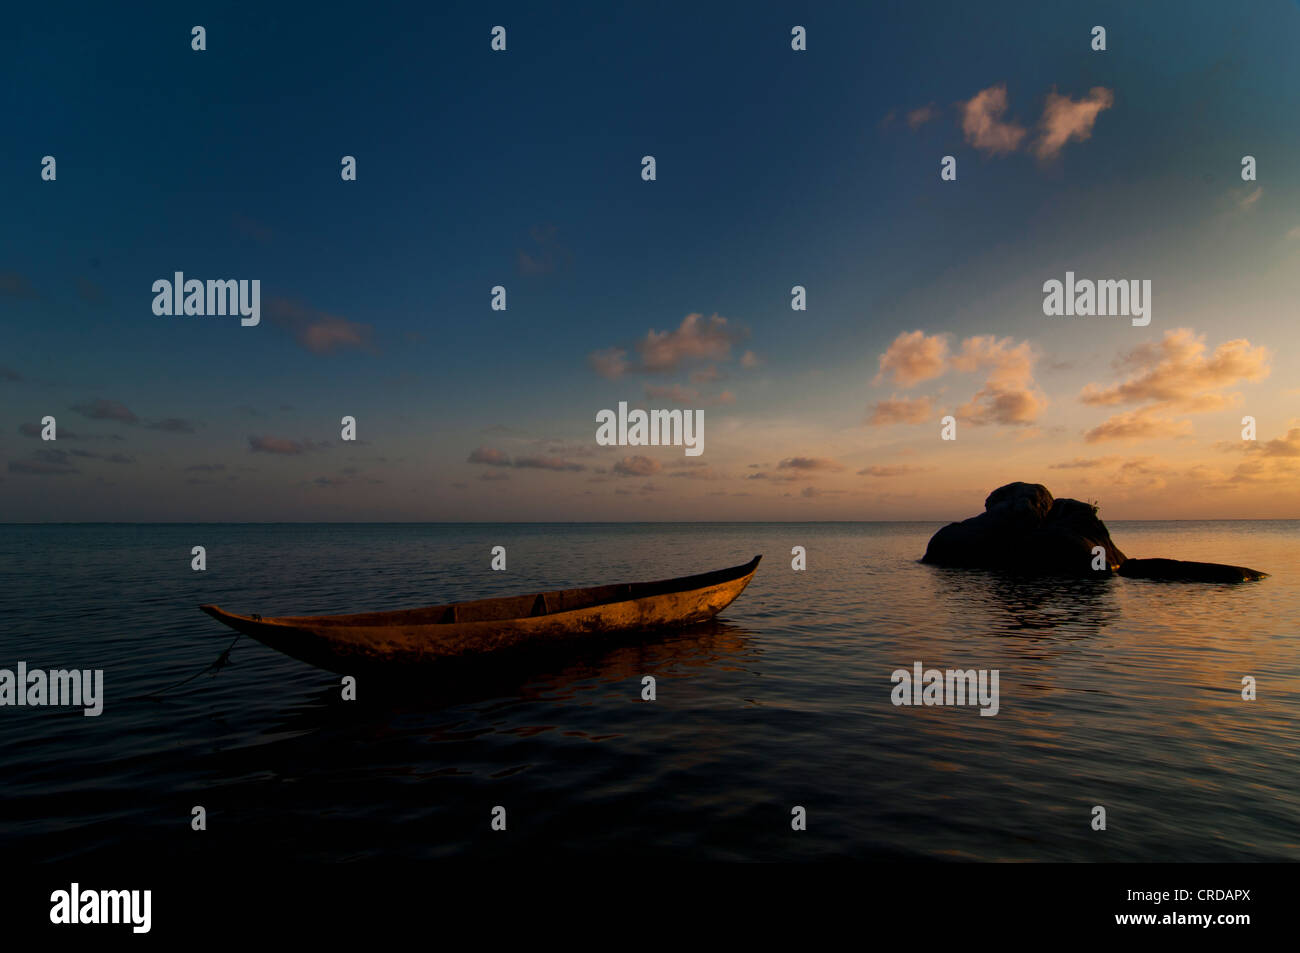 Traditional Malagasy boat near the beach at sunset, Madagascar, Africa - Stock Image